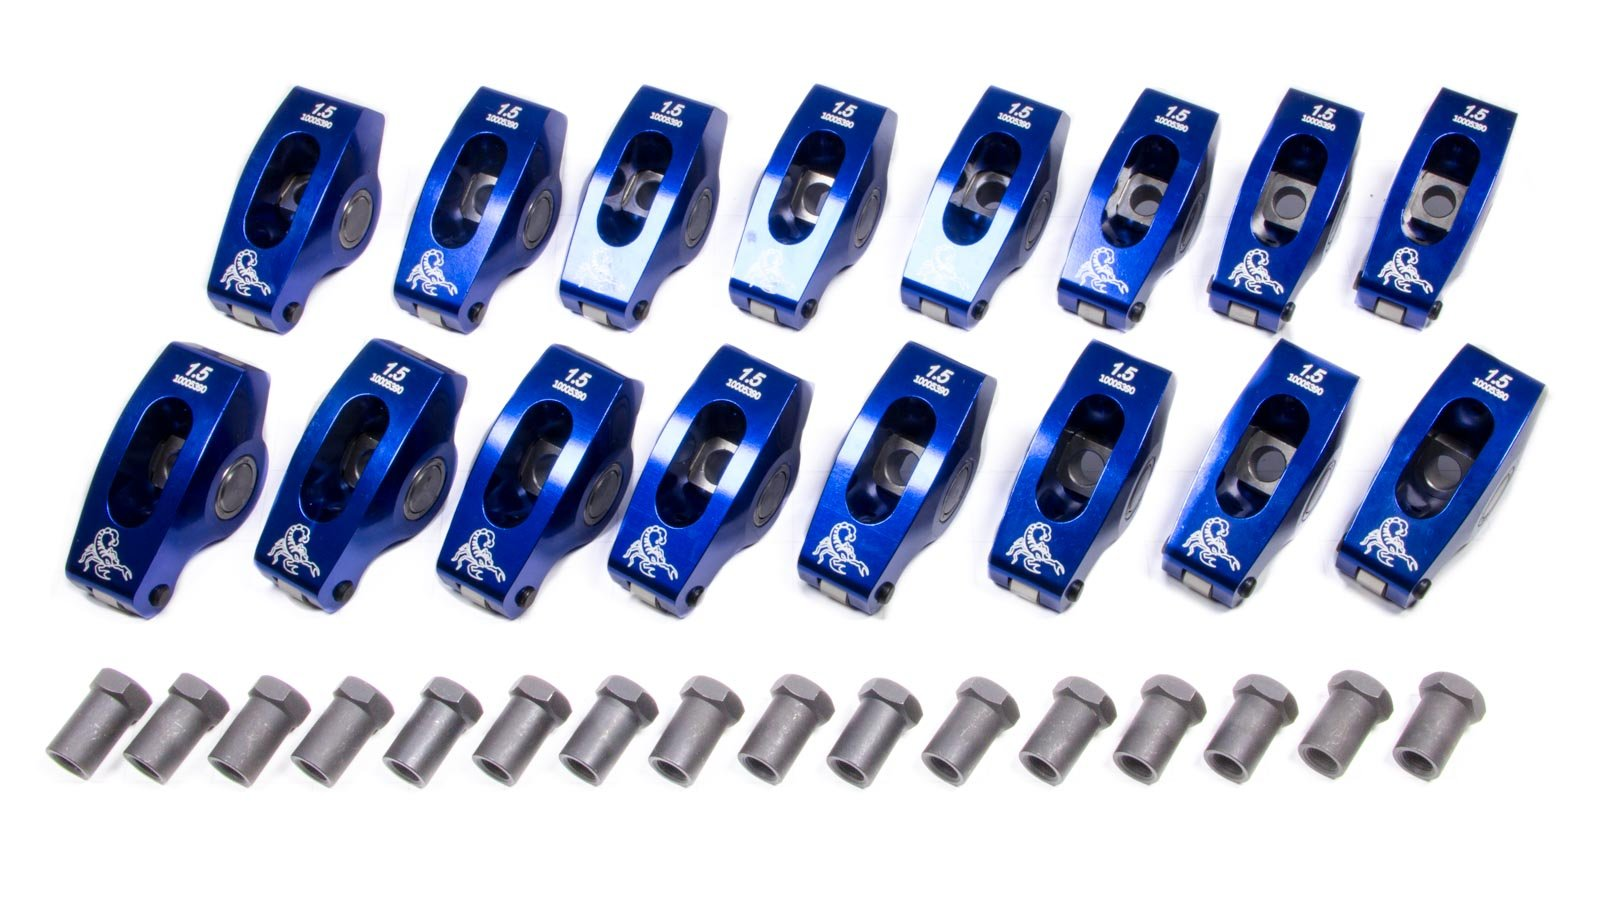 Scorpion Performance 1037 1.5 Ratio Roller Rocker Arm for Small Block Chevy - Pack of 16 by Scorpion Performance